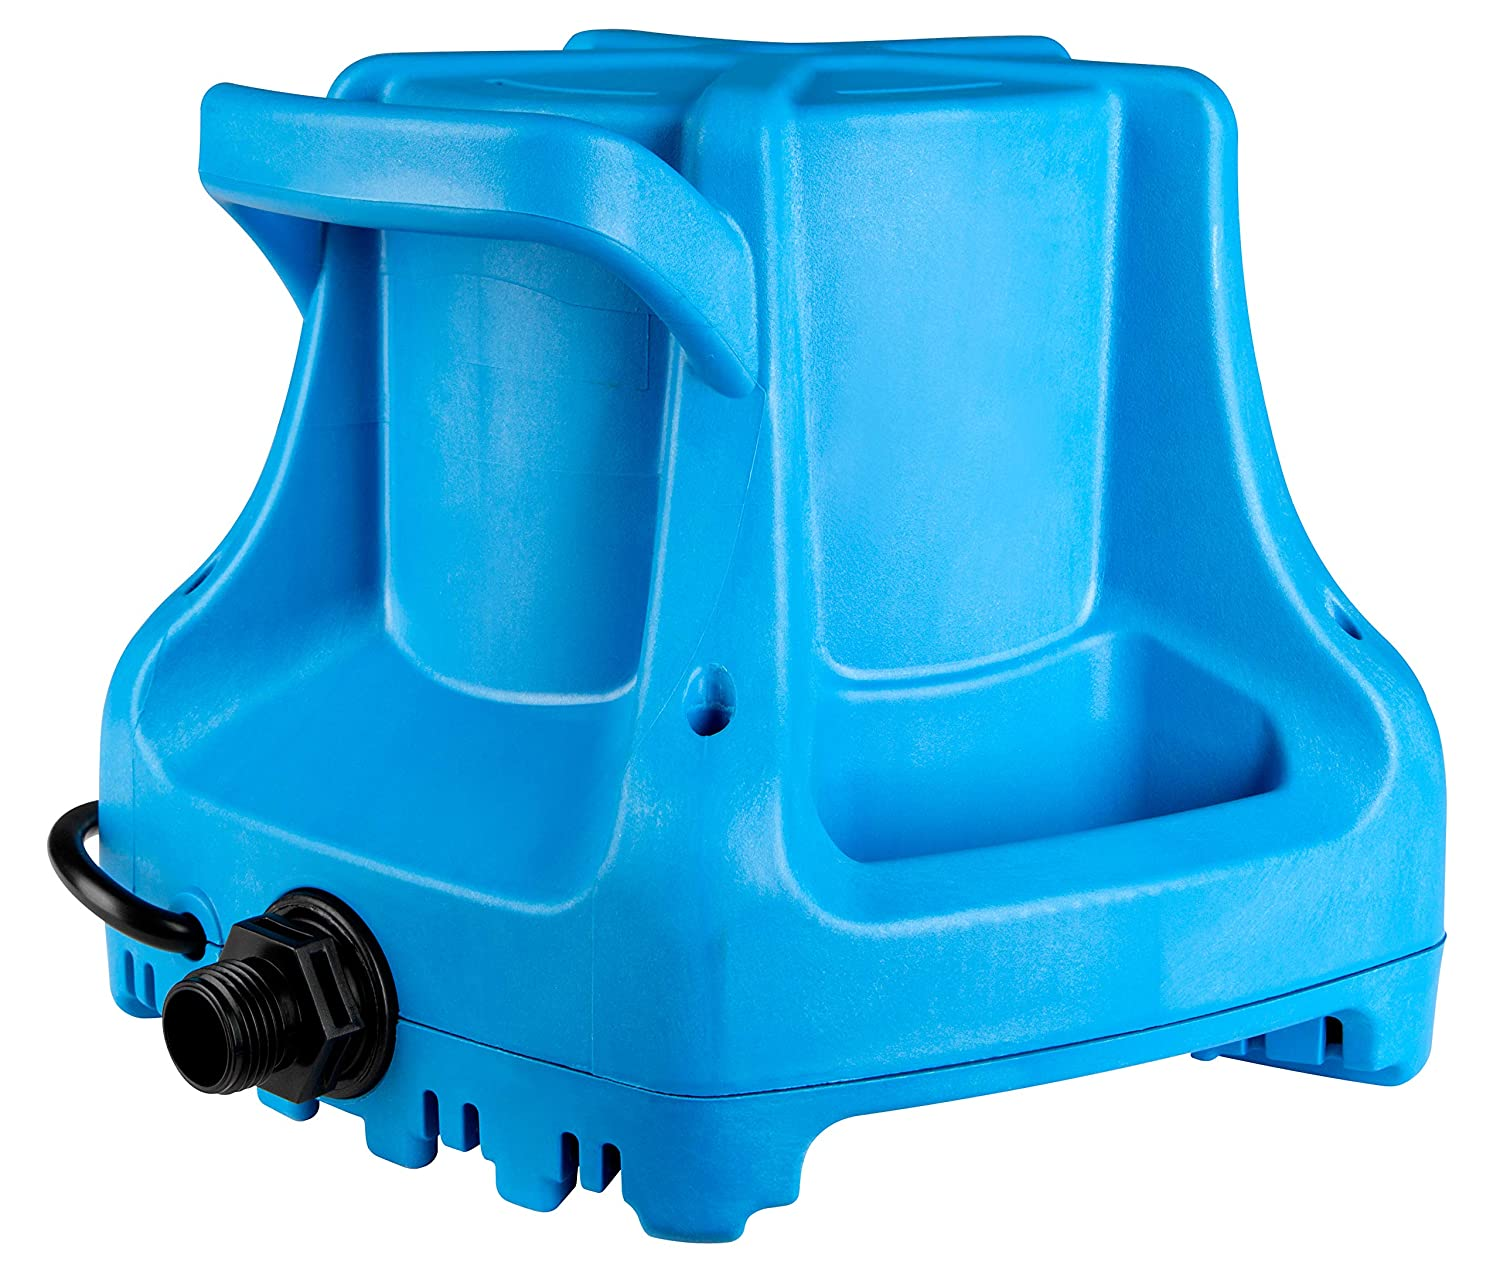 Amazon.com: Little Giant APCP-1700 - Cubierta de piscina ...